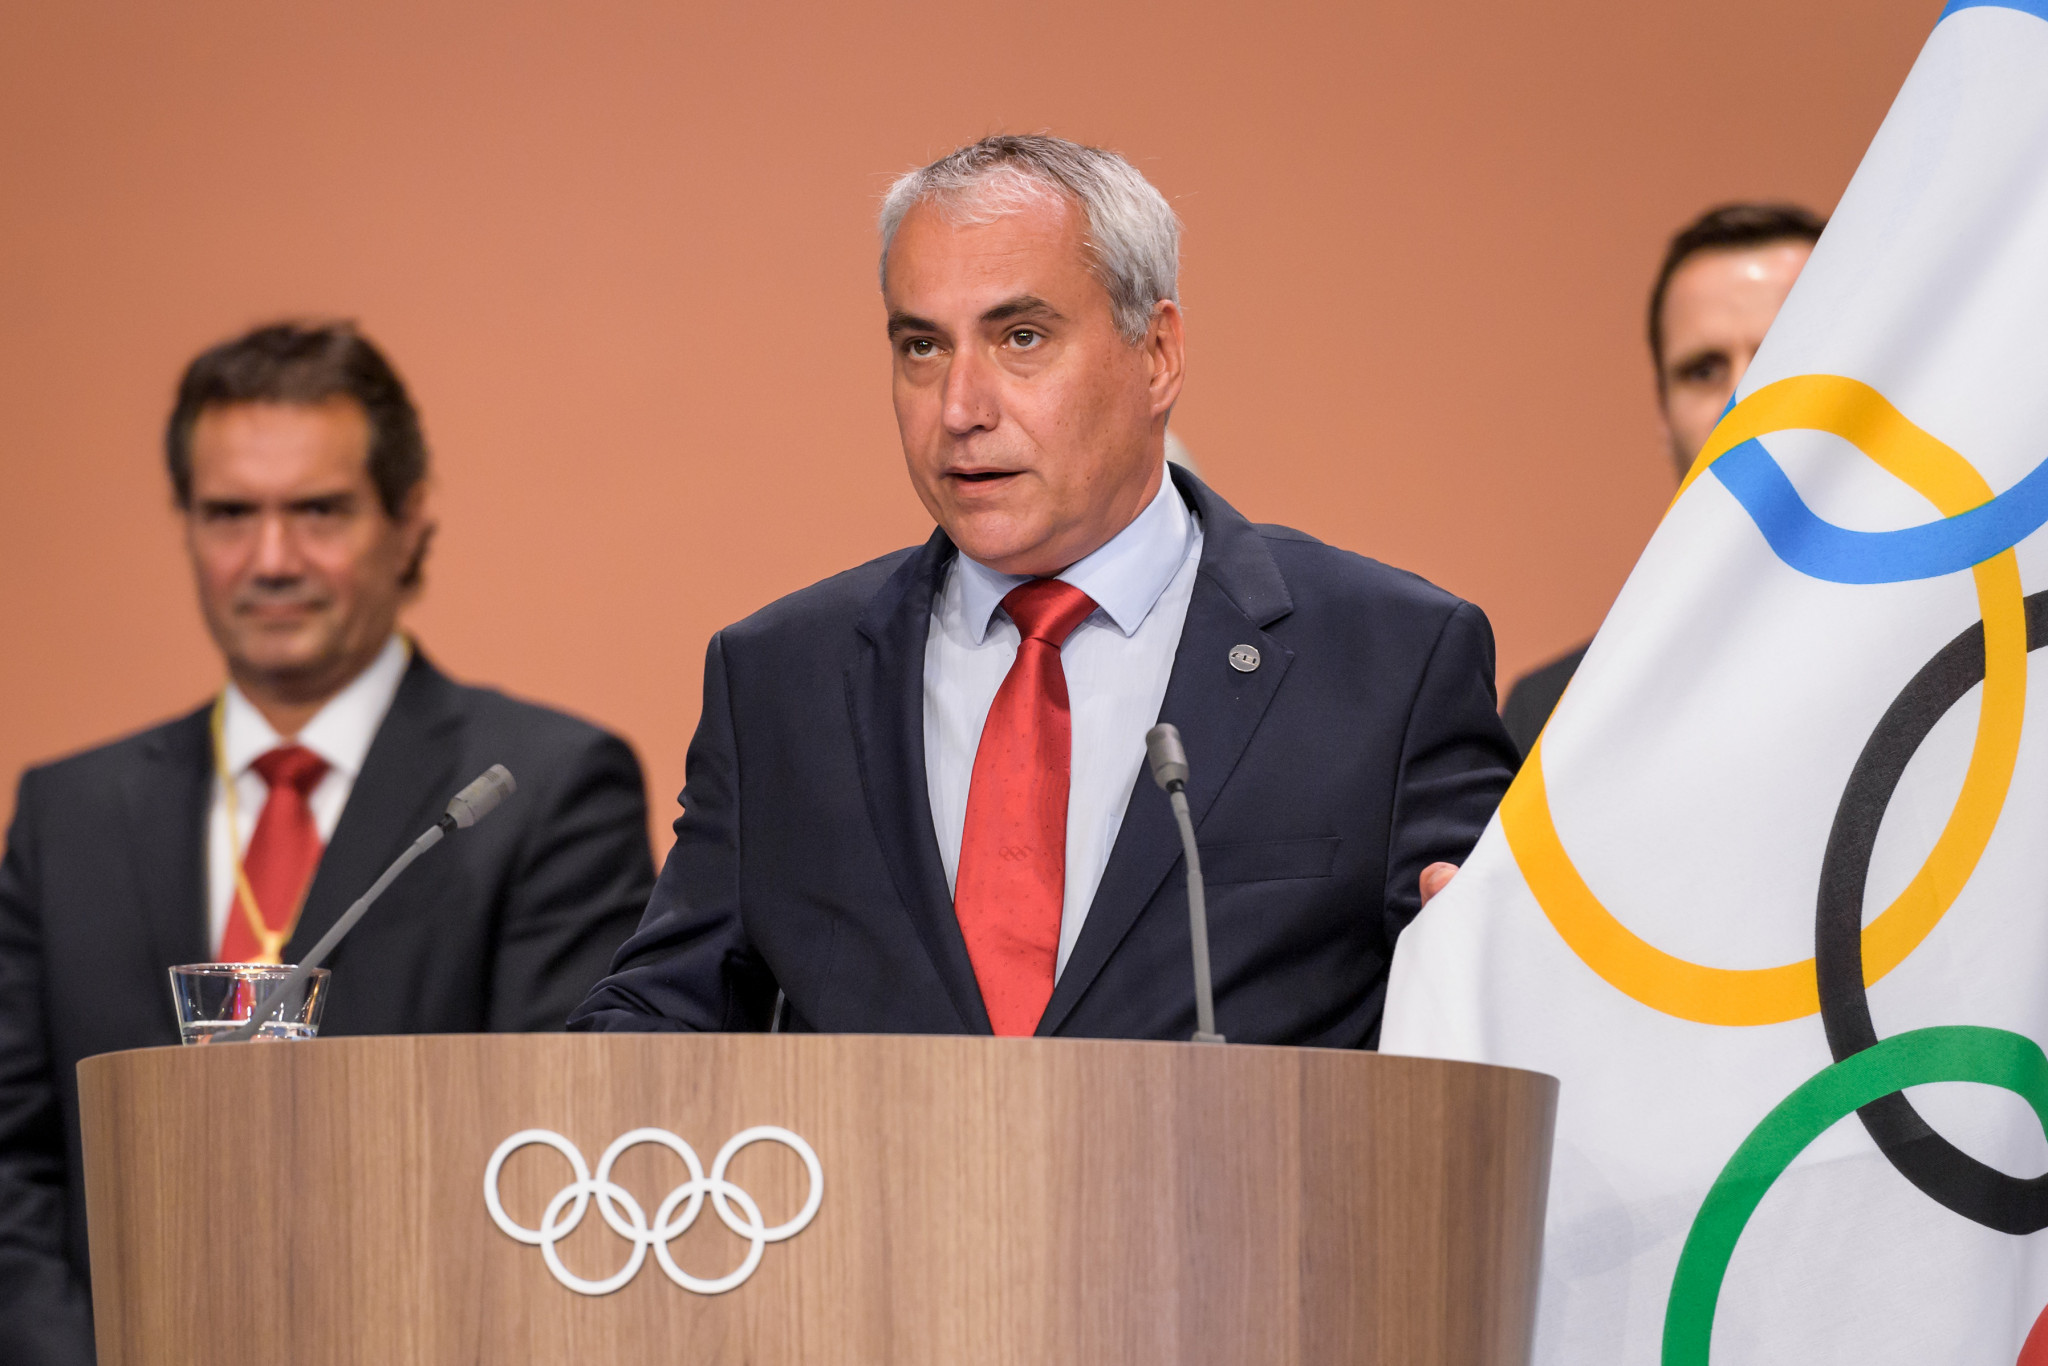 FEI President Ingmar De Vos says having the Paris 2024 Olympic equestrian events in  Versailles opens up the sport to a